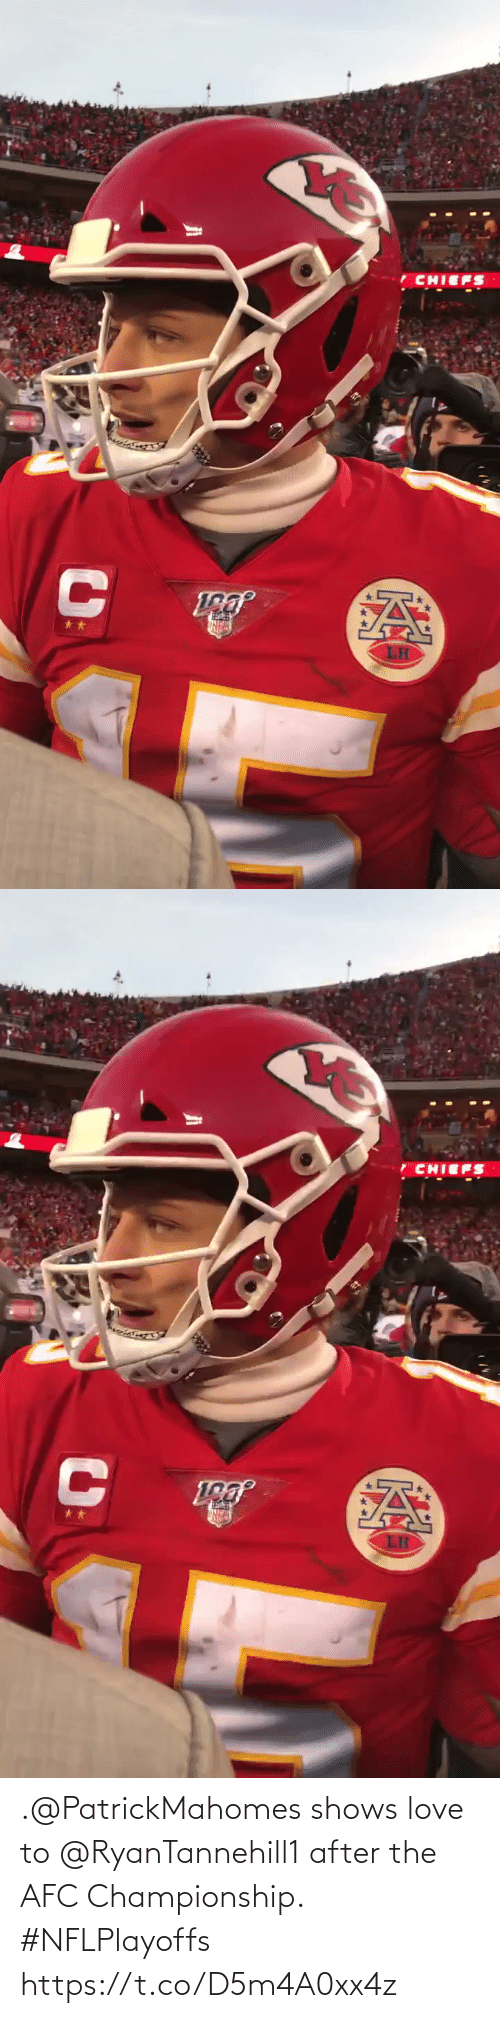 Shows: .@PatrickMahomes shows love to @RyanTannehill1 after the AFC Championship. #NFLPlayoffs https://t.co/D5m4A0xx4z